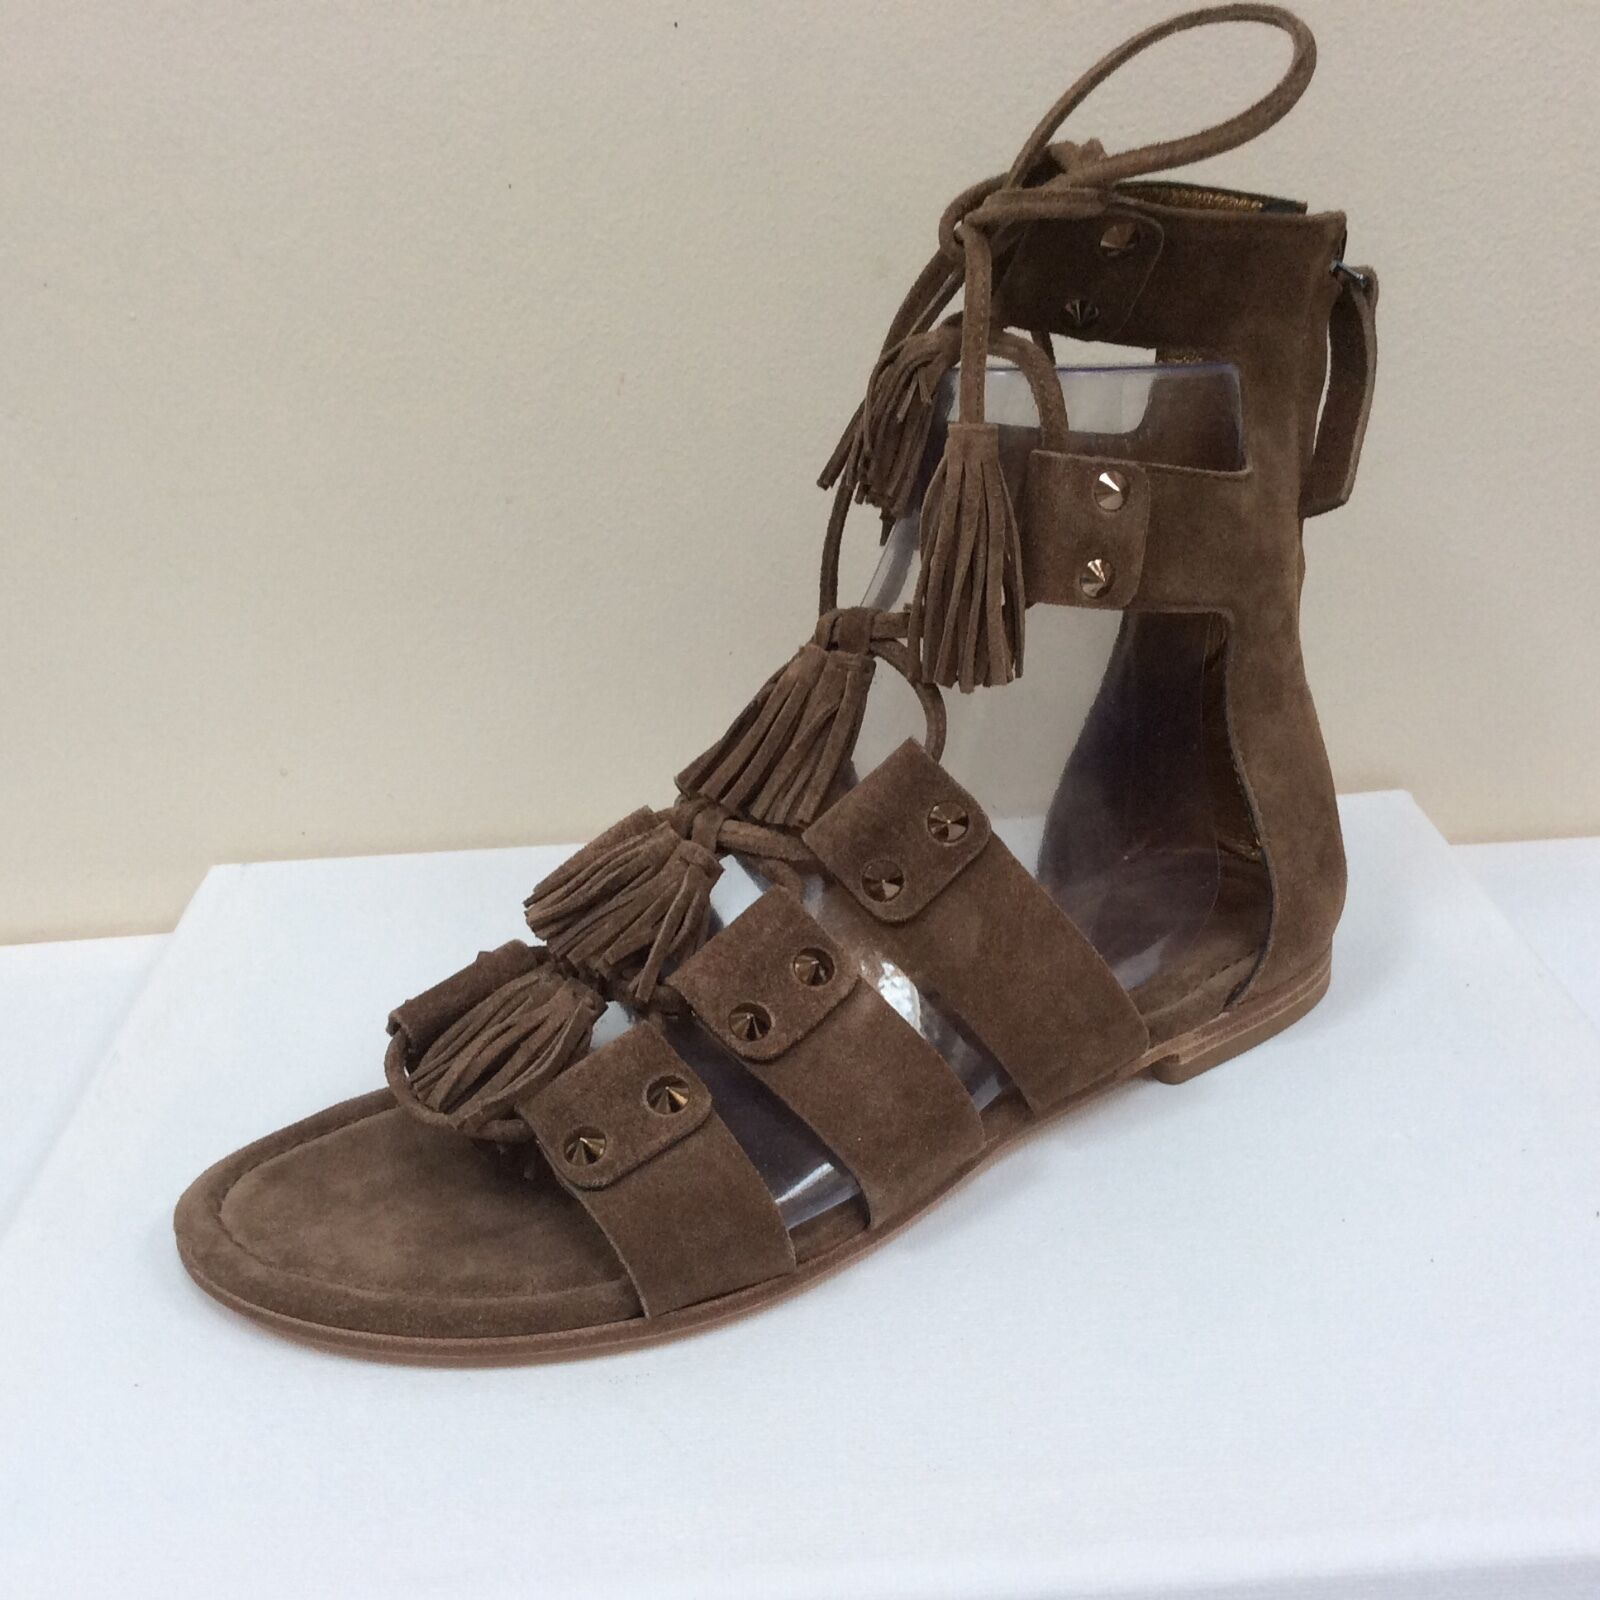 K&S tan suede gladiators with tassel detail,  UK 3/EU 36,   detail, BNWB e5be16